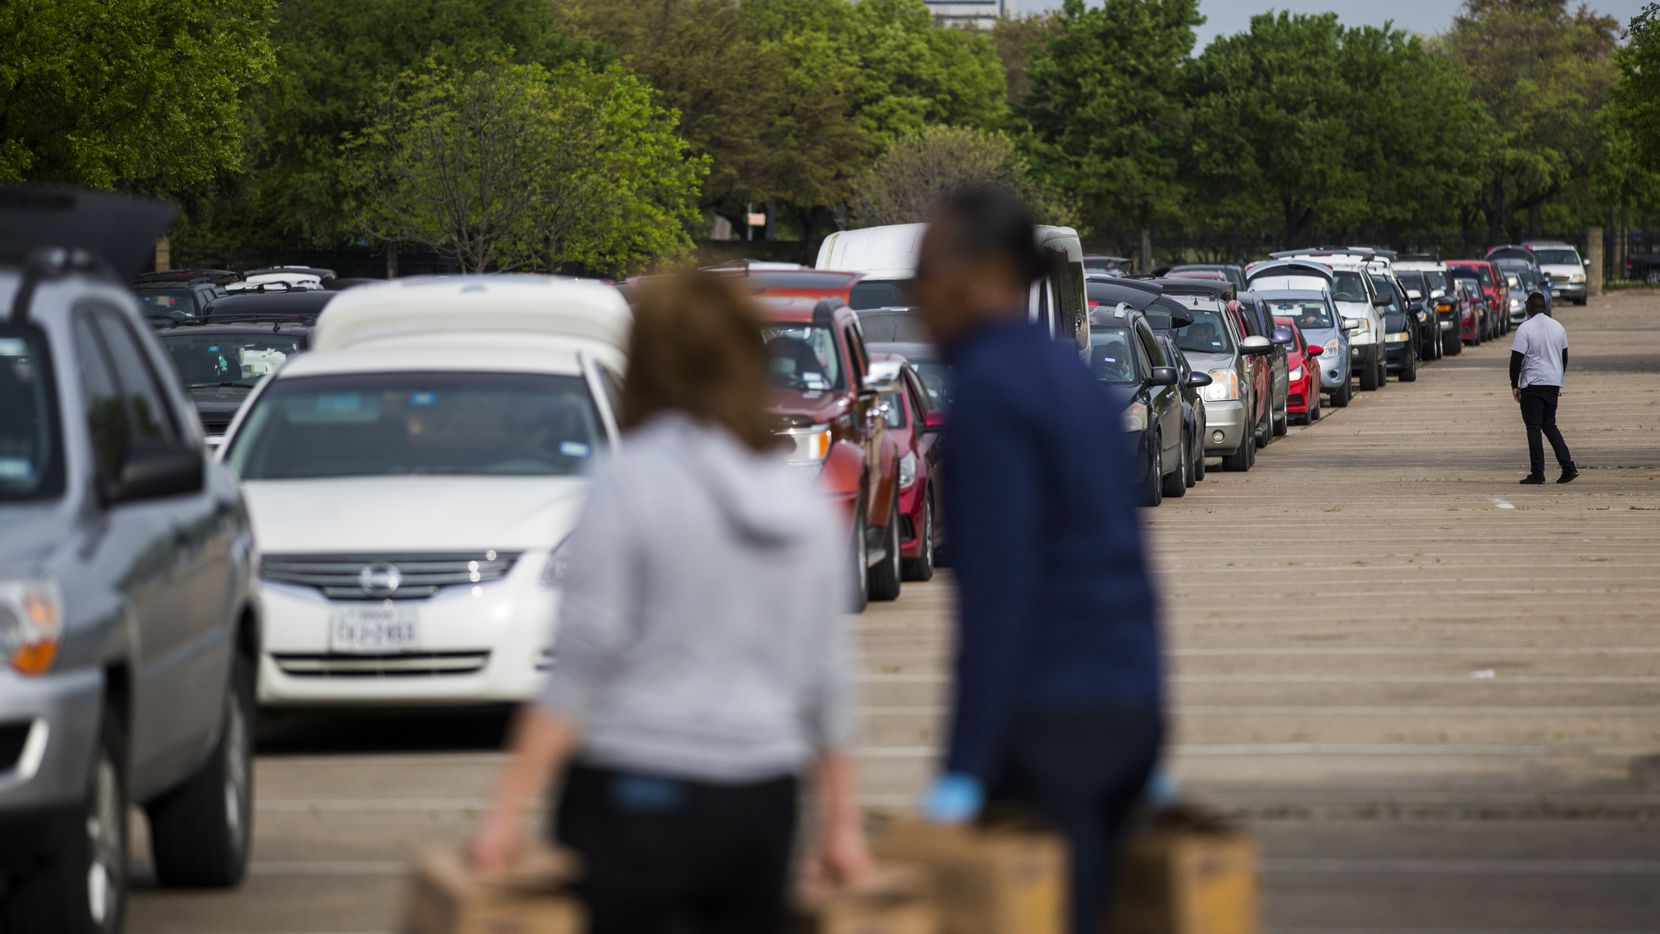 Hundreds of vehicles lined up to receive food during a distribution event put on by the North Texas Food Bank and several partner organizations at Fair Park on Thursday.